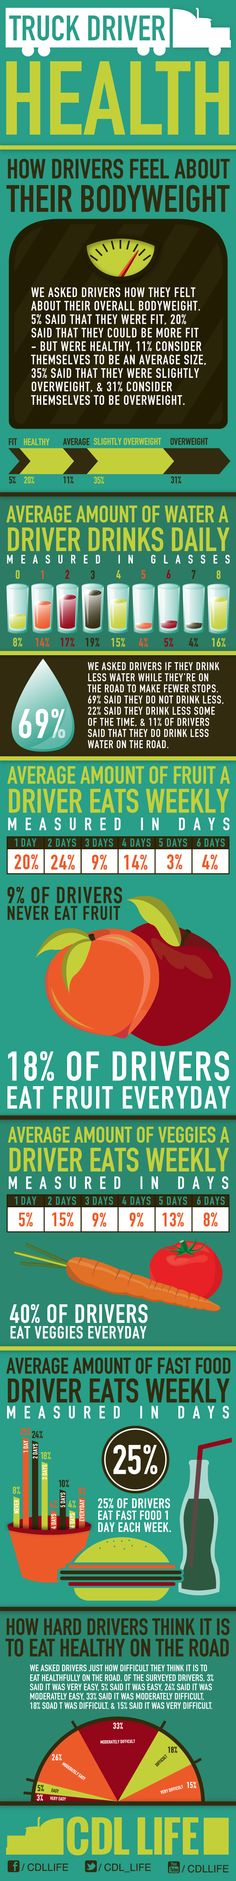 Infographic: Truck Driver Health